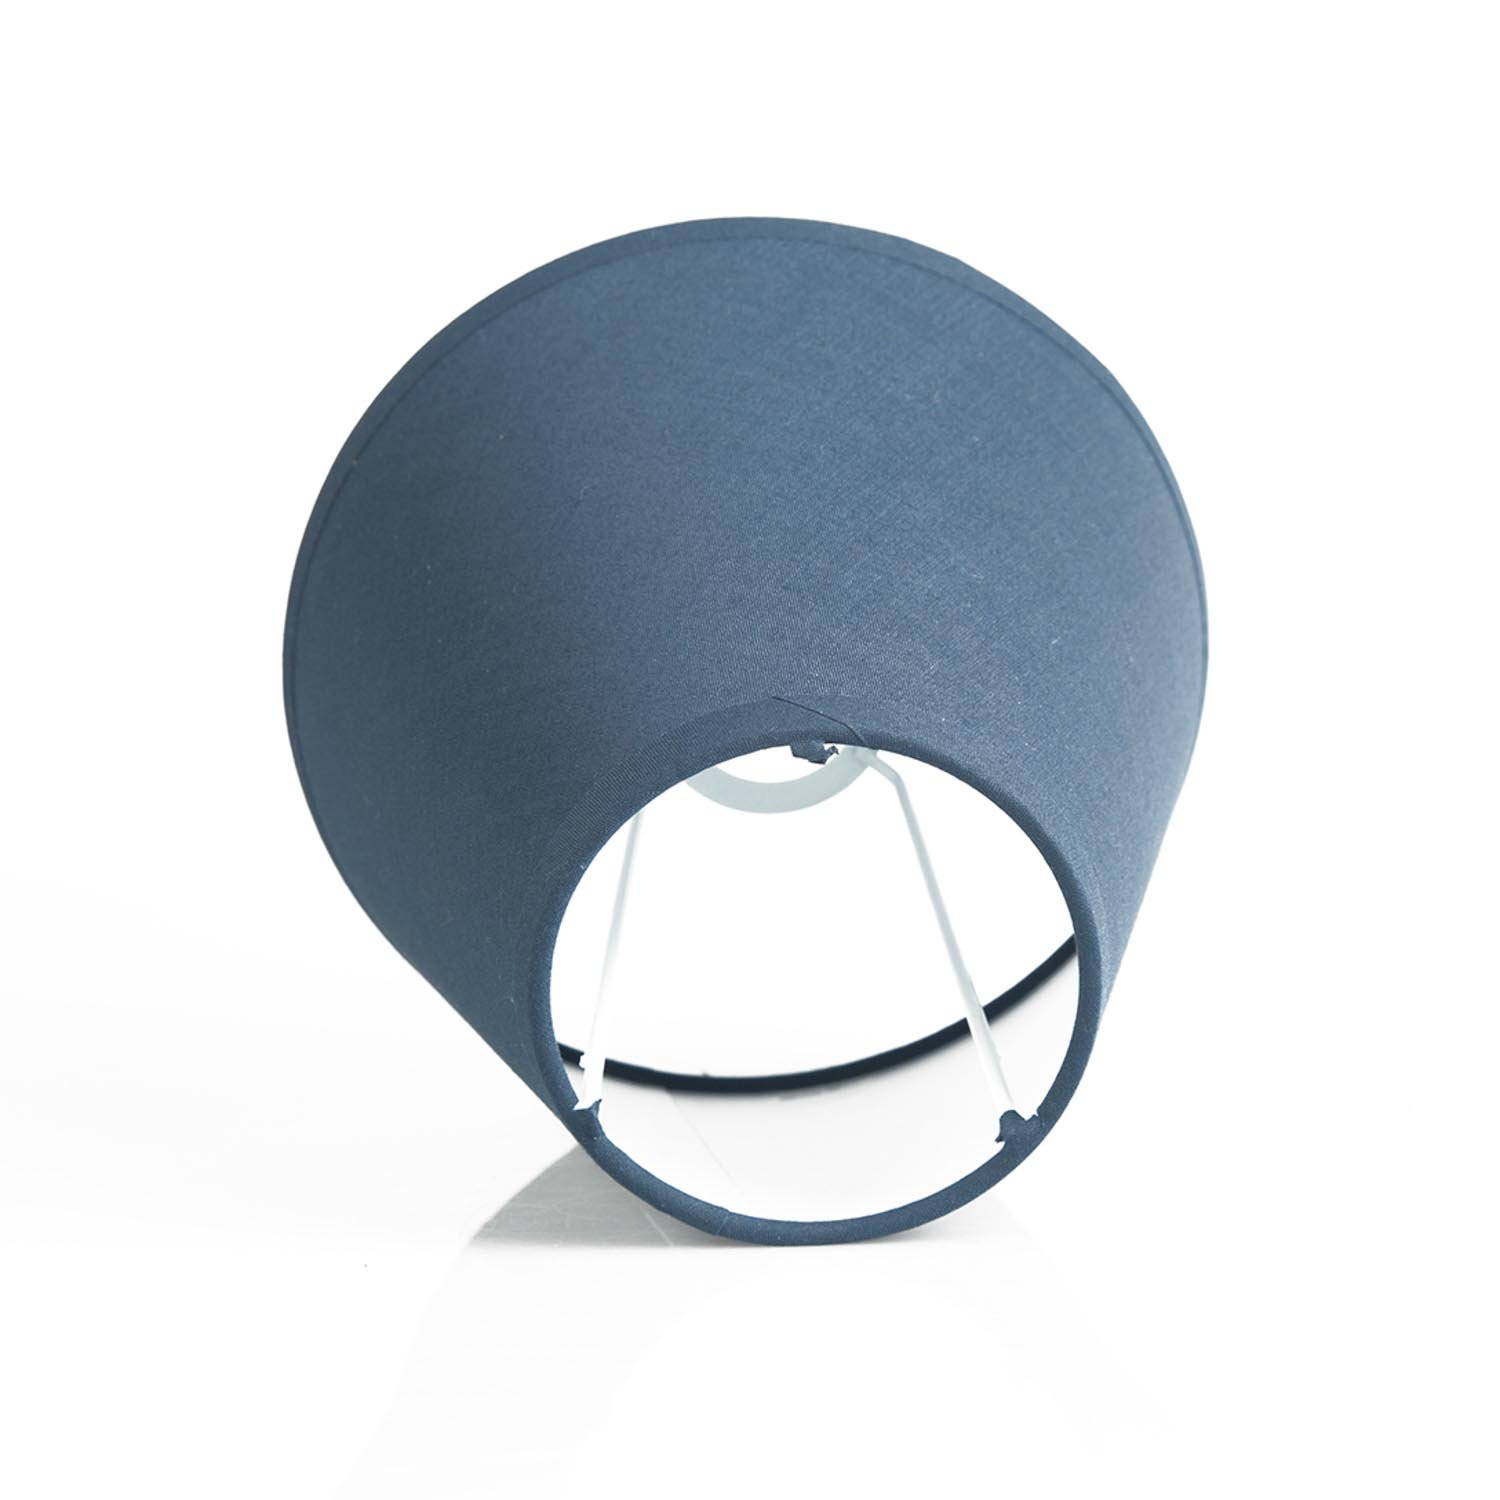 OYGROUP Solid Color Replacement Lampshade Simple Fashion Shade Creative Simple Table Lamp Desk Light Wall Lights E26 E12 Shade (Pack of 2) 8x14x16cm Dark Blue